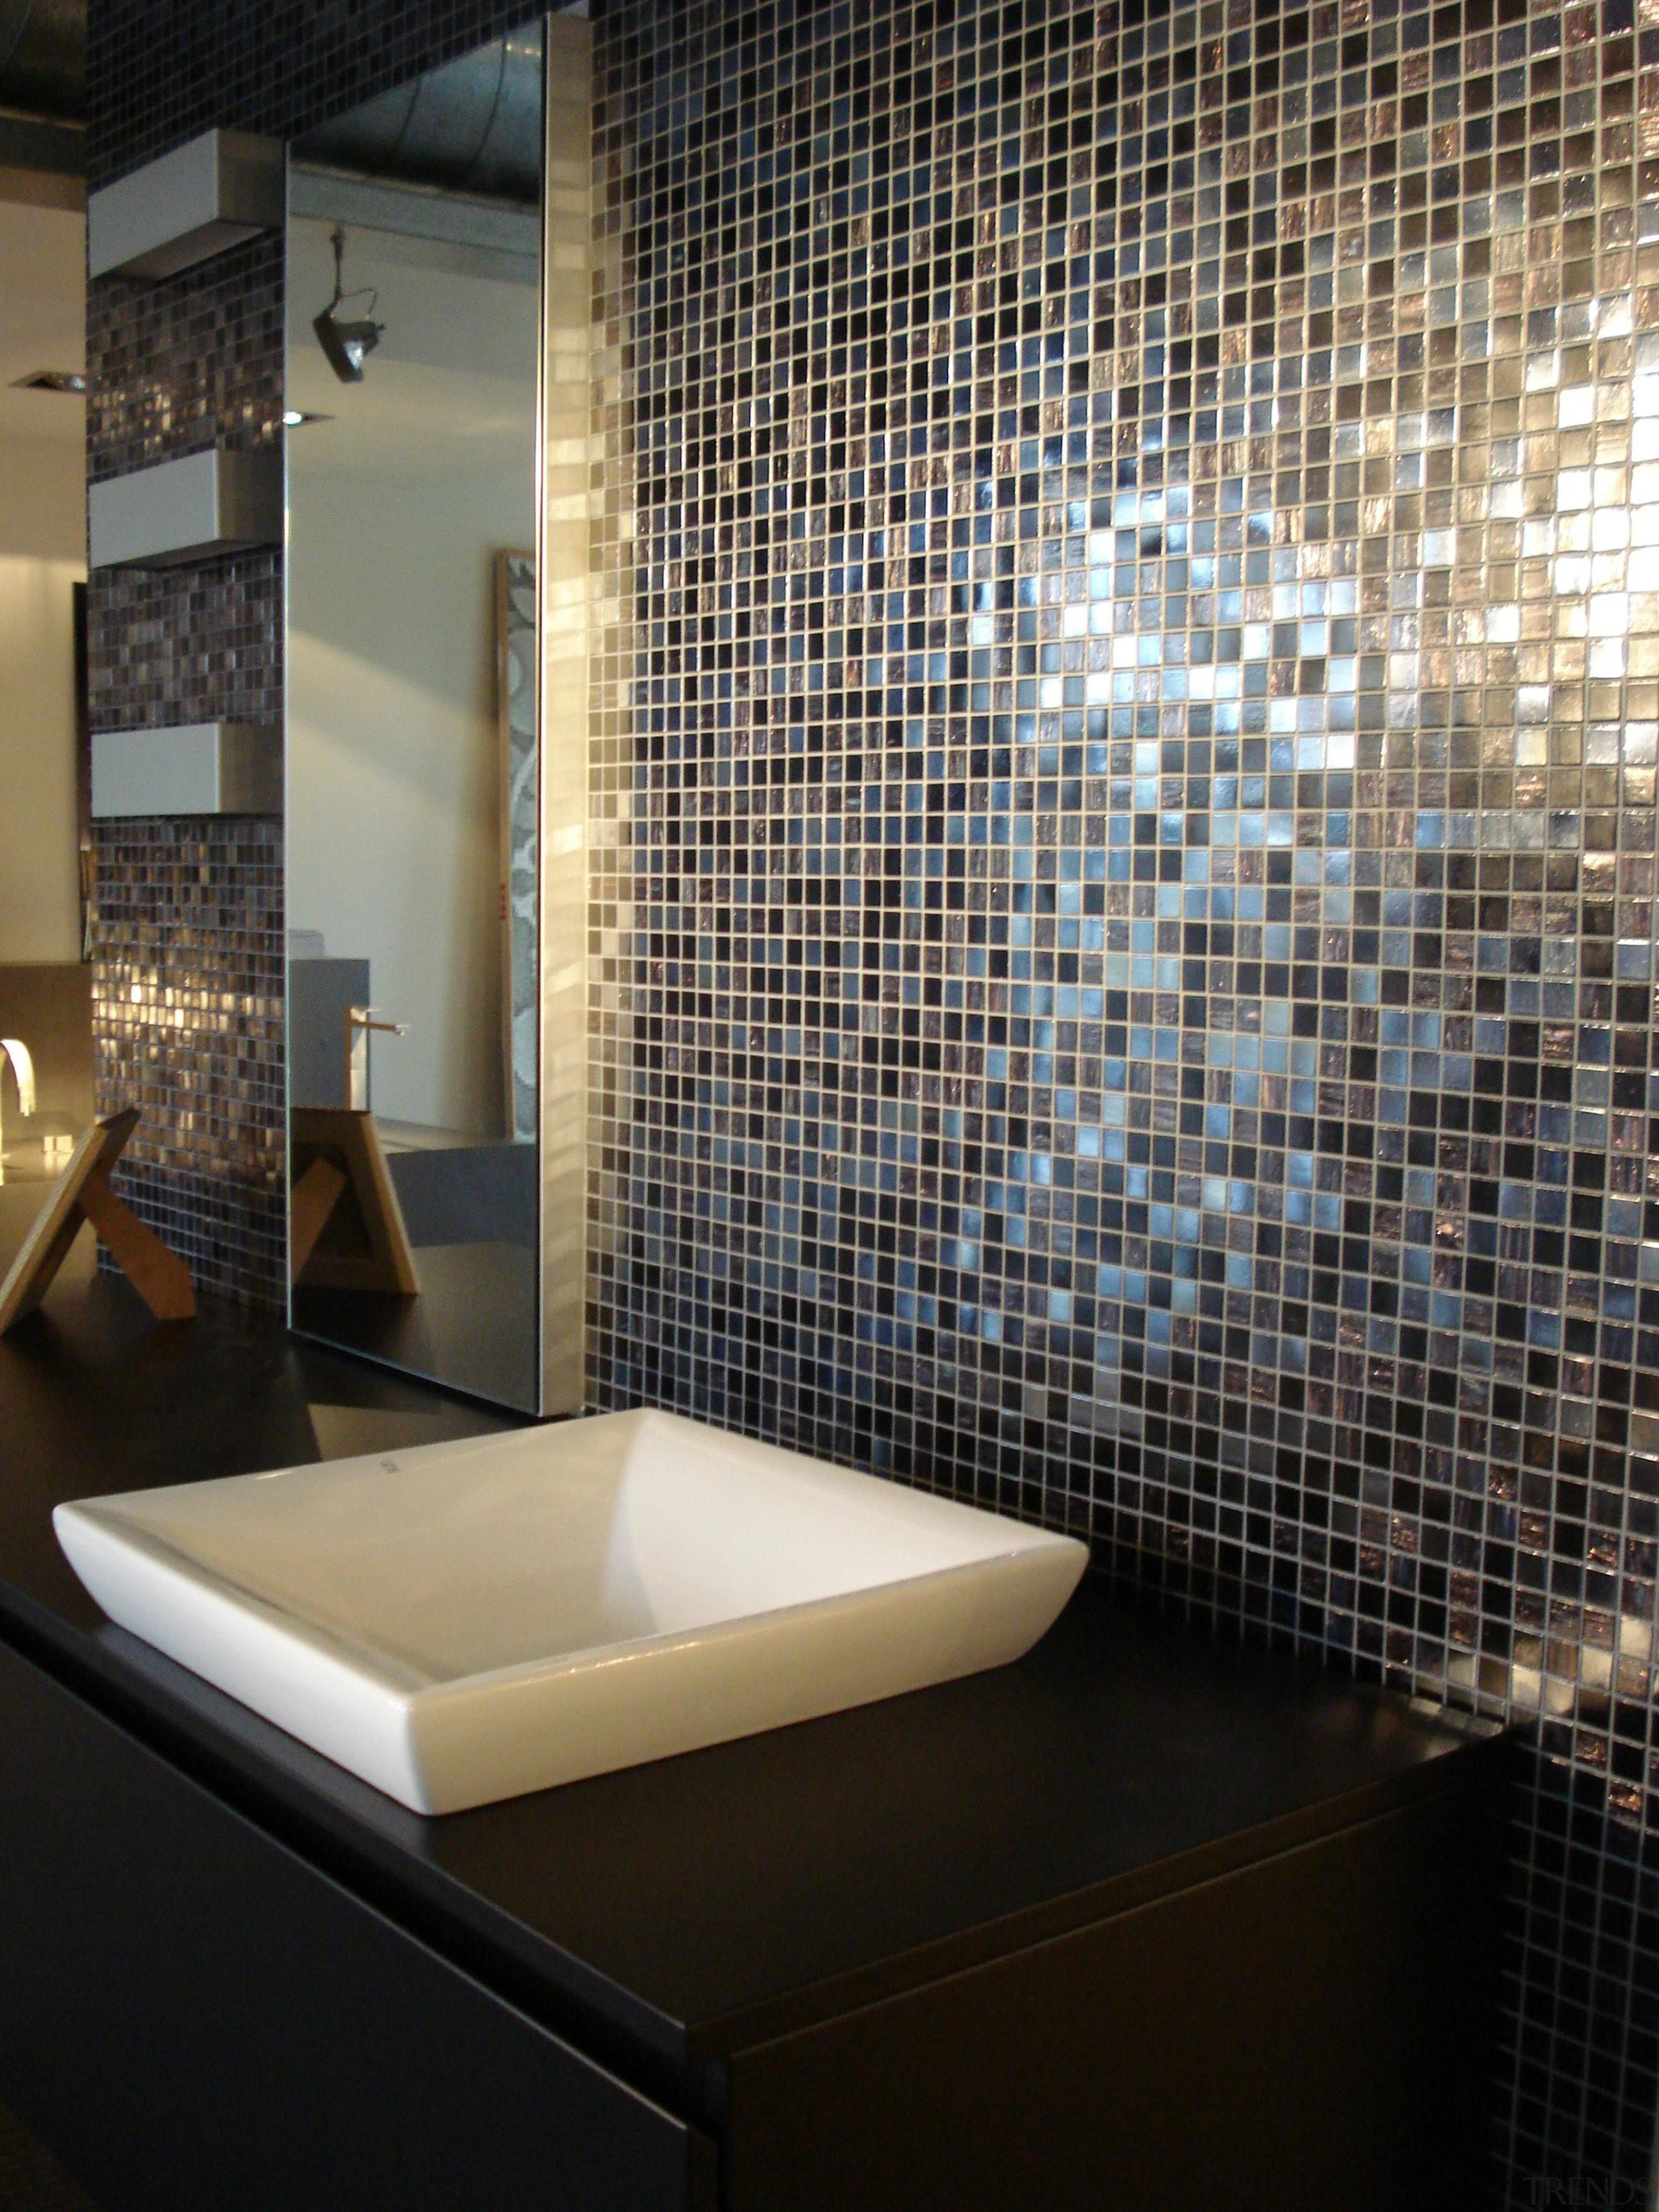 Iside feature wall. - Bisazza Range - architecture architecture, bathroom, ceiling, floor, flooring, glass, interior design, room, tile, wall, black, gray